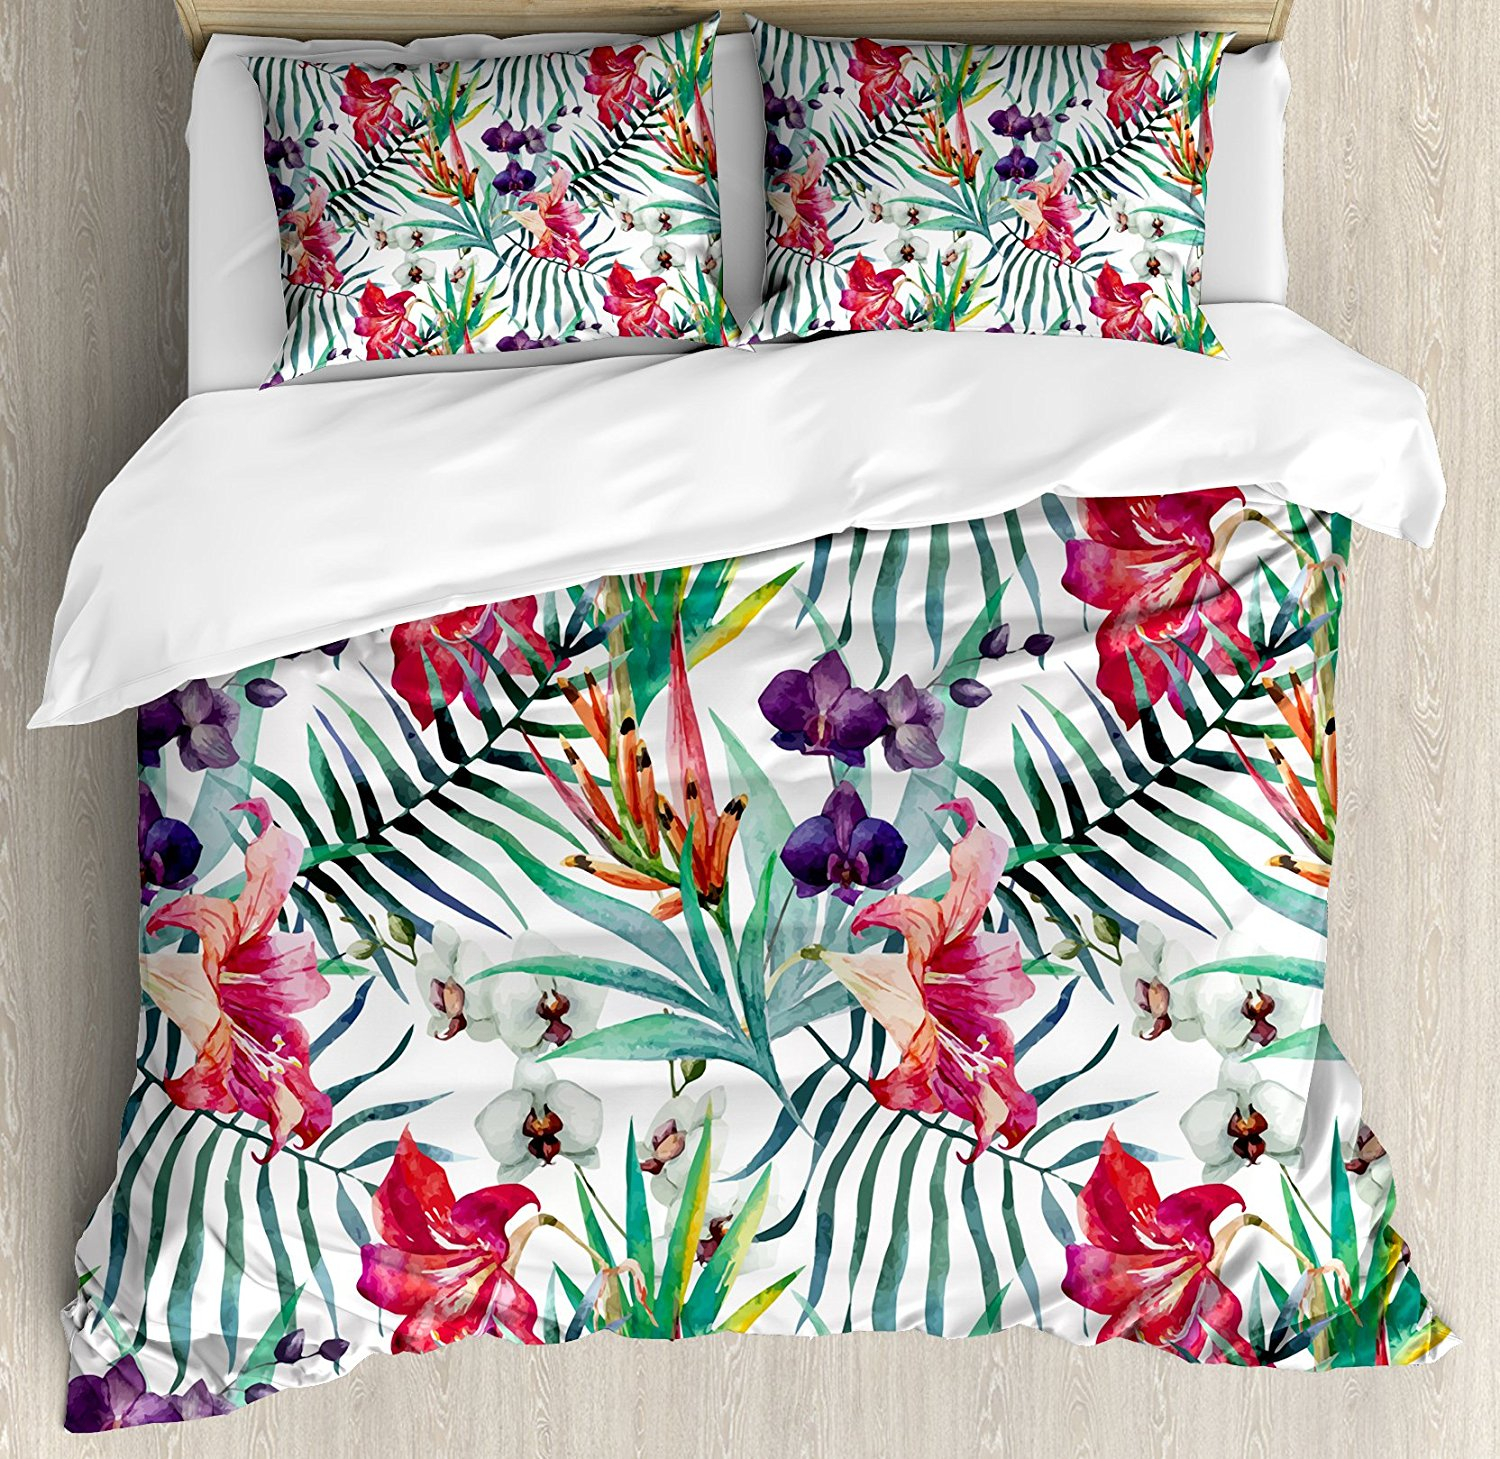 Floral Duvet Cover Set Watercolored Tropical Exotic ...